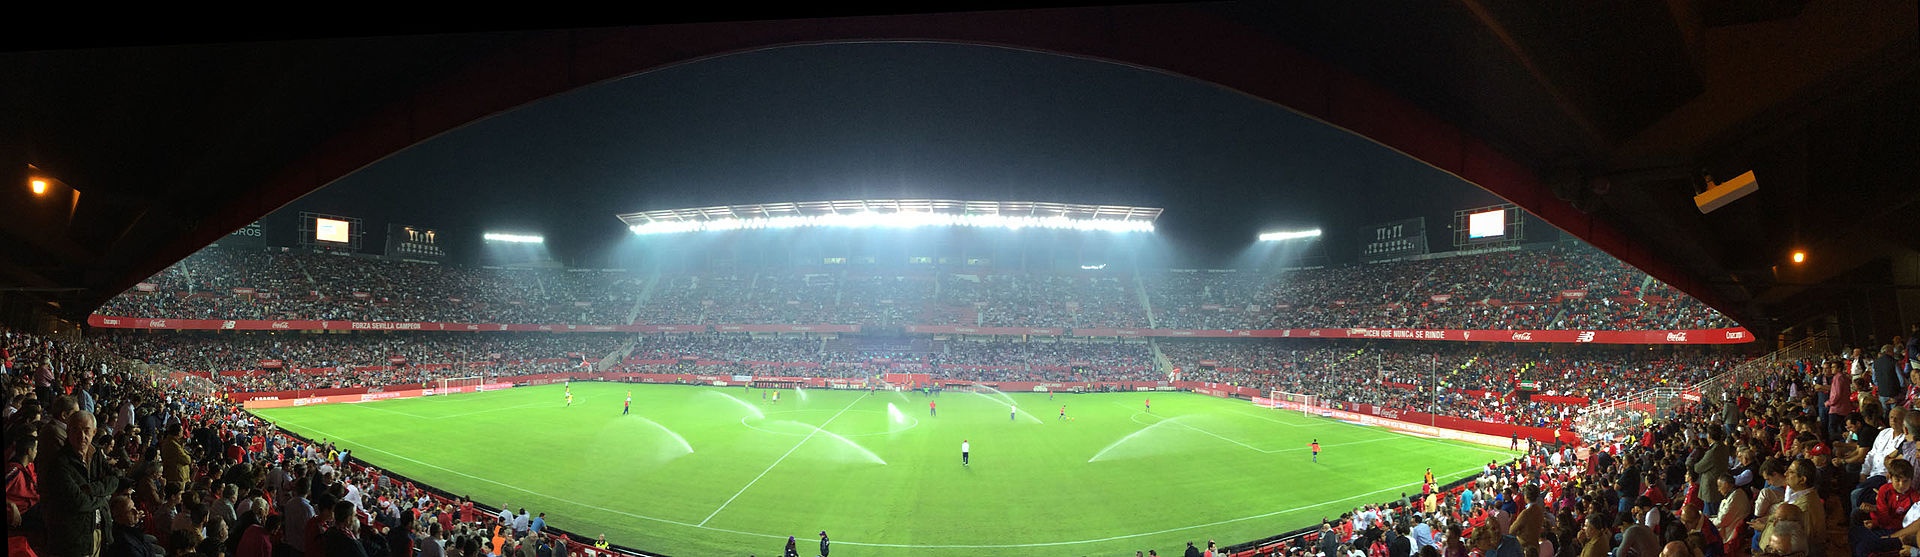 Estadio_Ramon_Sanchez_Pizjuan,_October_2015